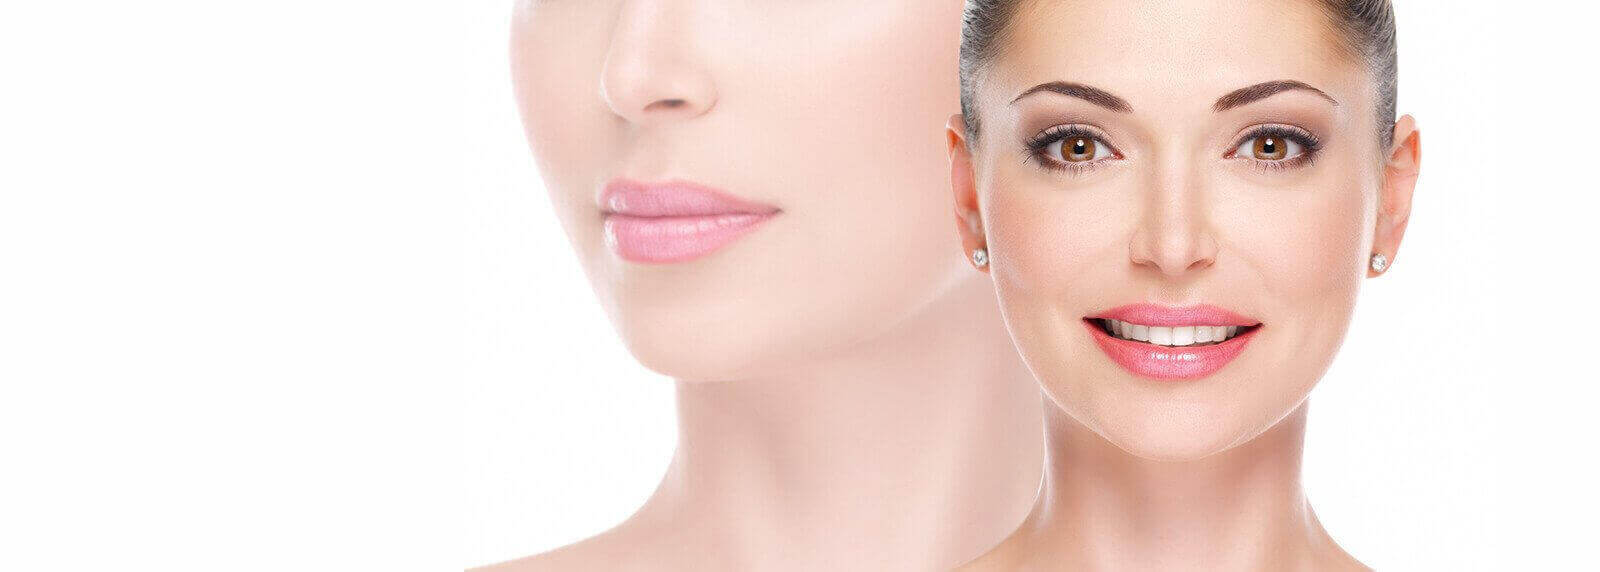 anti wrinkle injection treatment for face